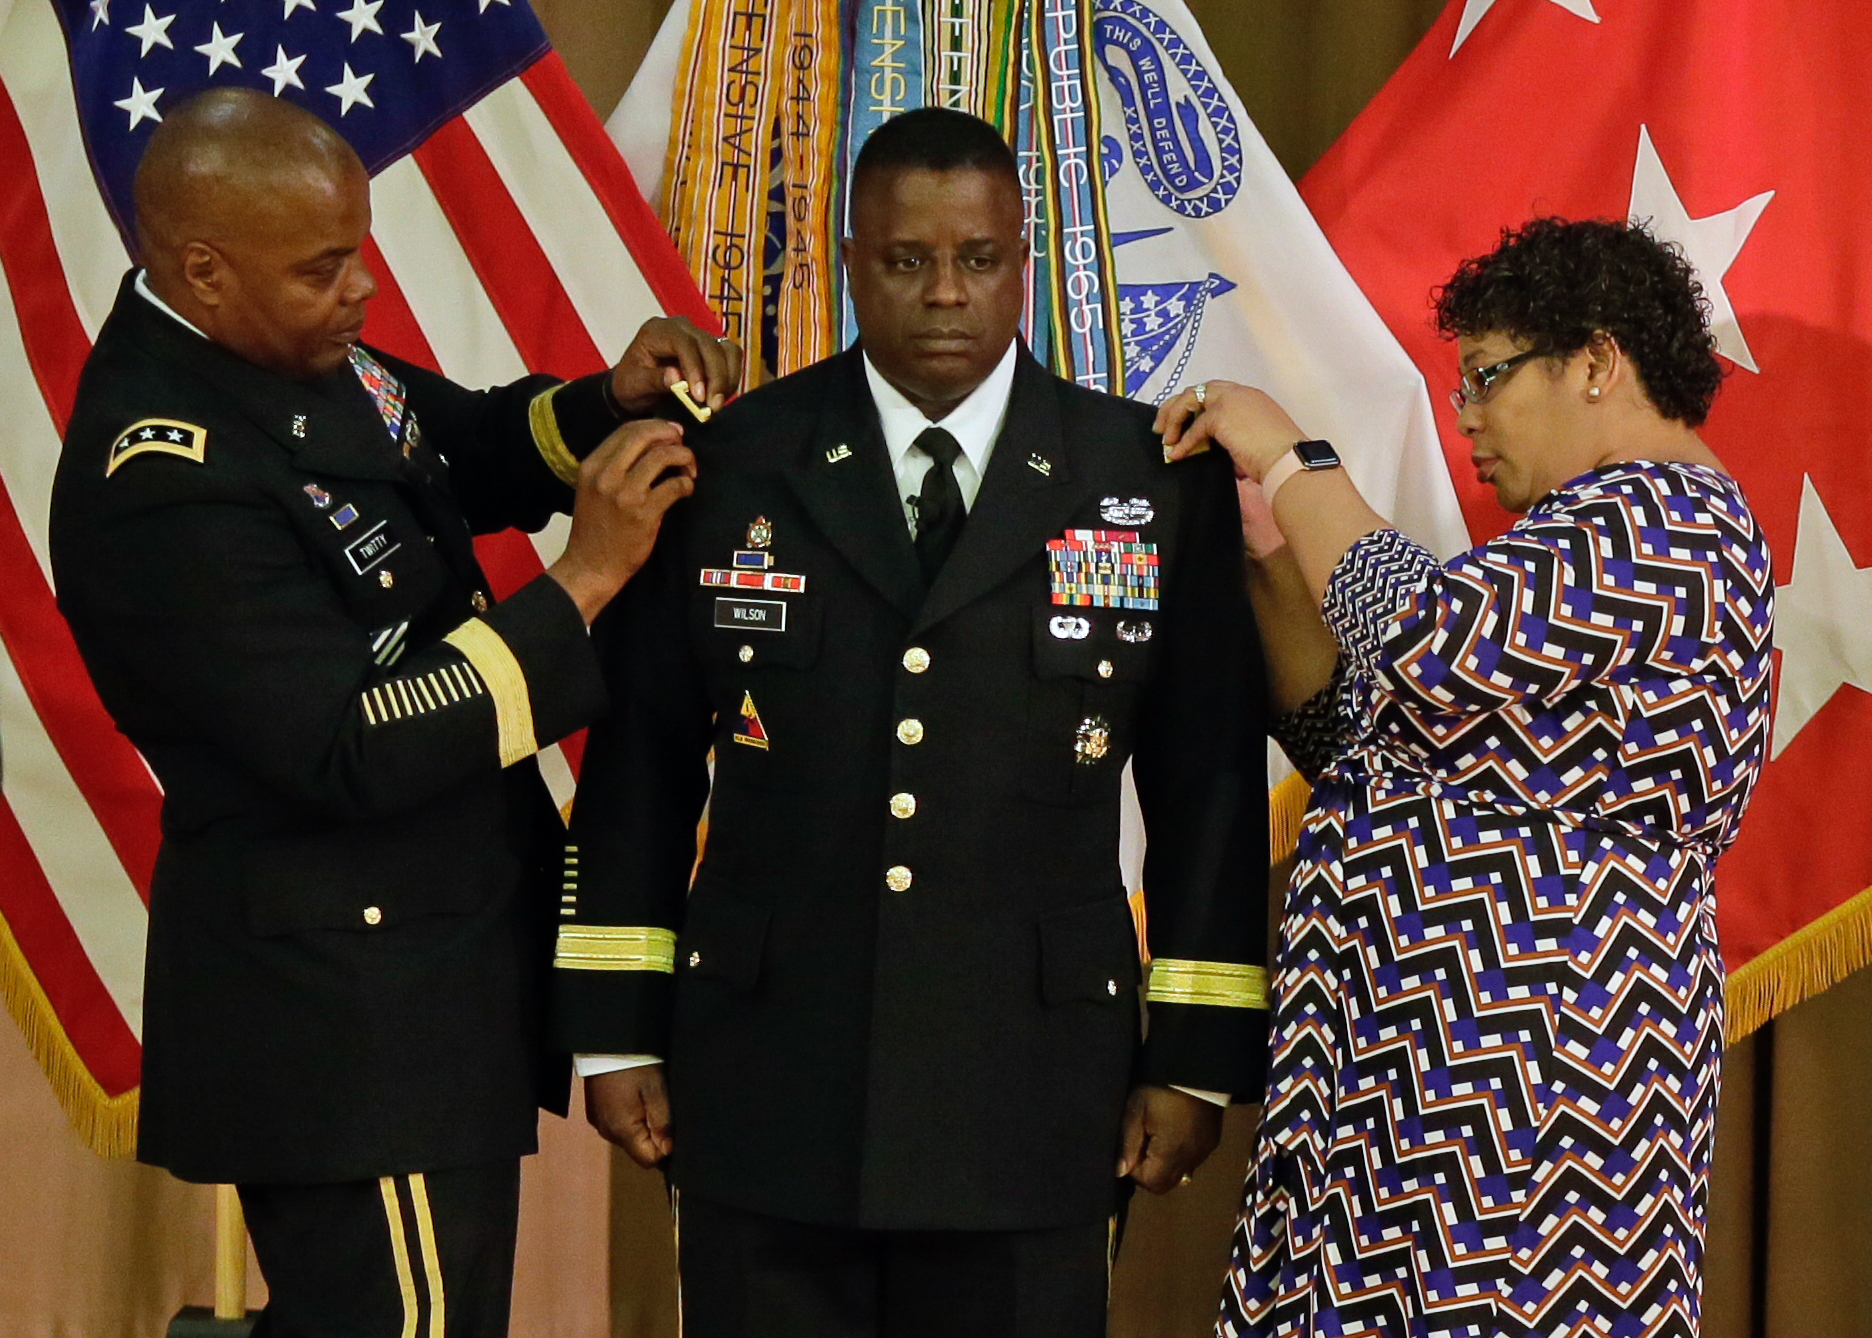 Brig. Gen. David Wilson, Chief of Ordnance, stands at attention while Lt. Gen. Stephen Twitty, commanding general, First Army, and Patricia Wilson, his spouse, place brigadier general epaulets on his jack during his promotion ceremony April 13 at the Citadel.